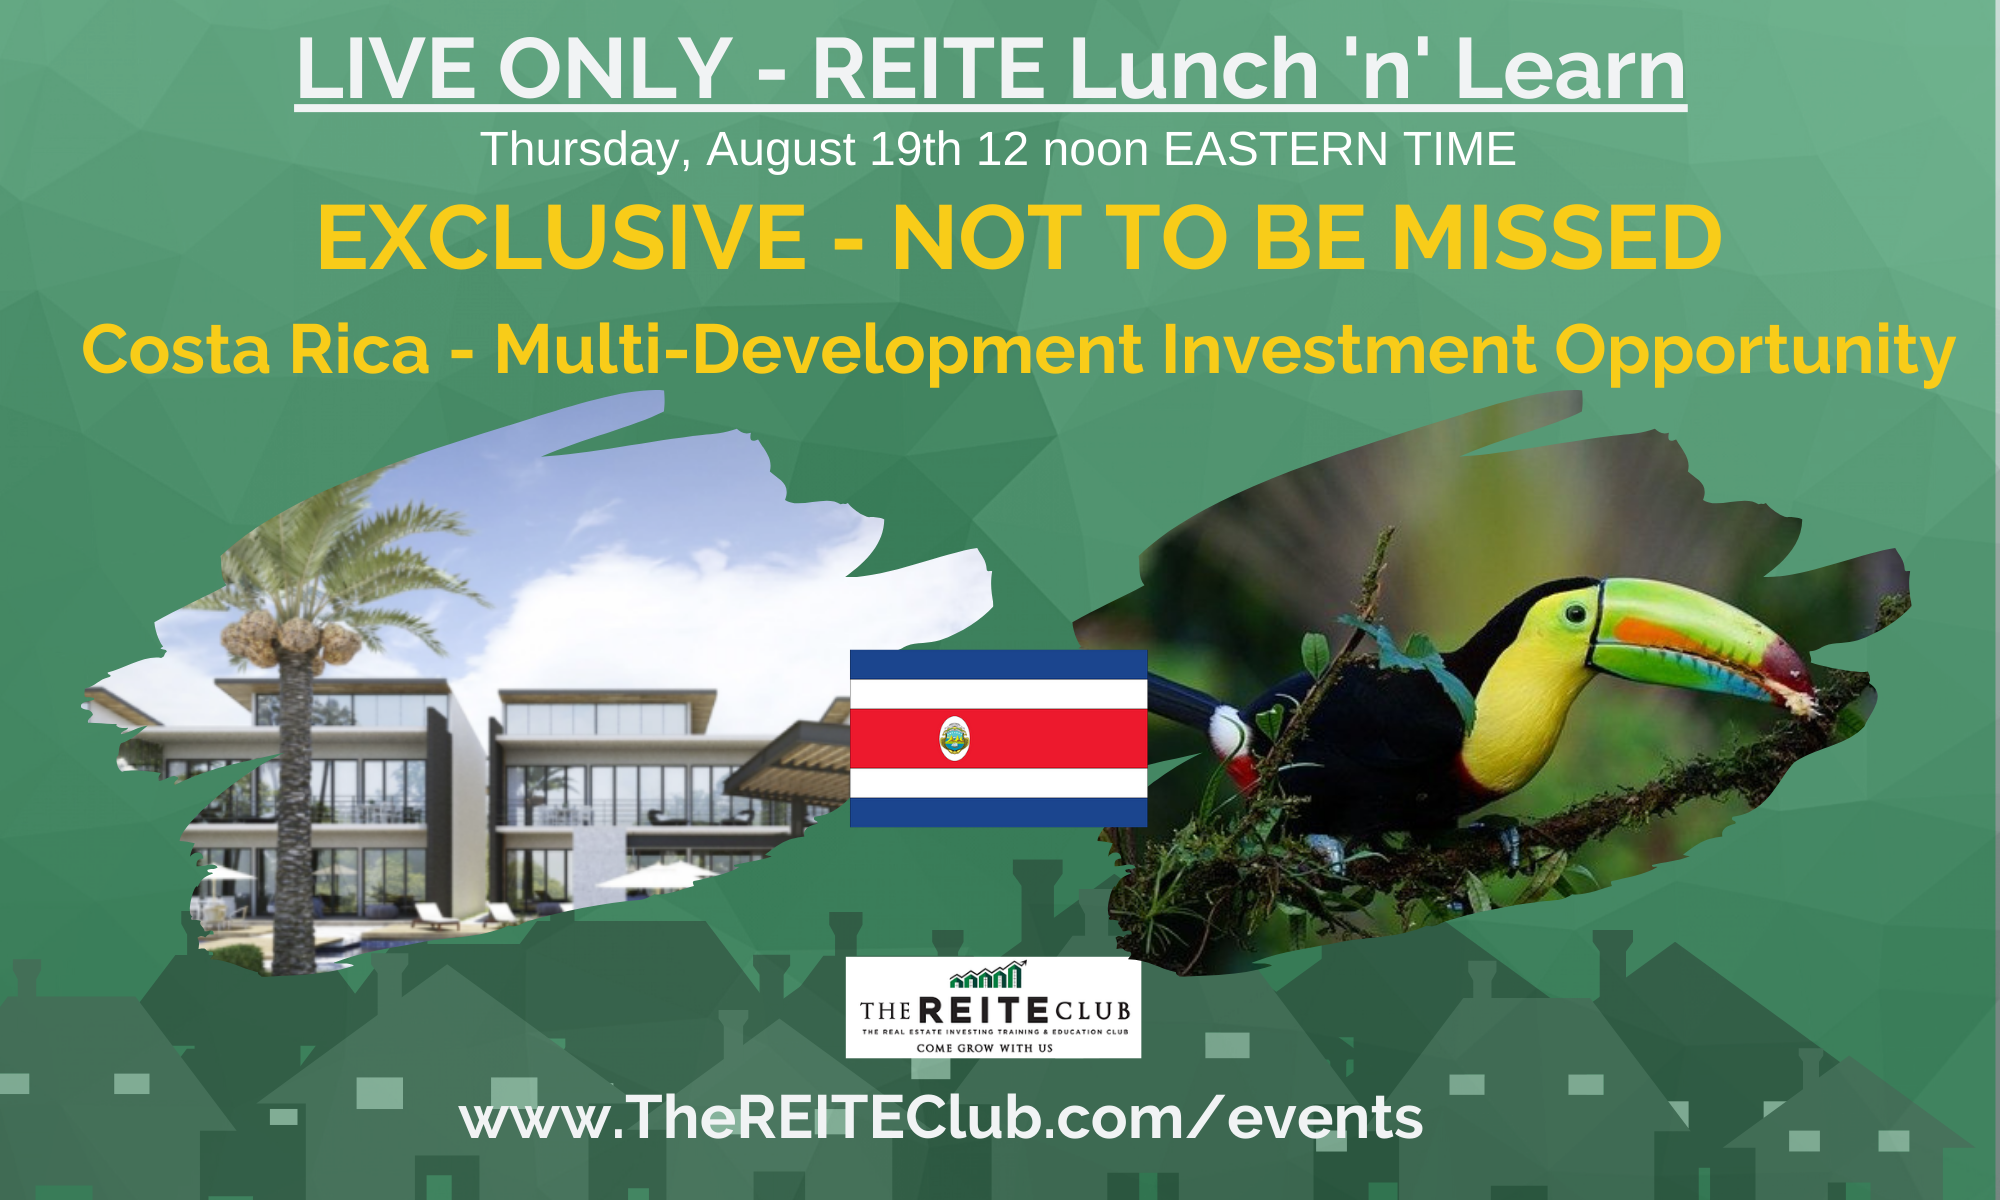 Lunch 'n' Learn Exclusive - Costa Rica Multi-Development Opportunities!